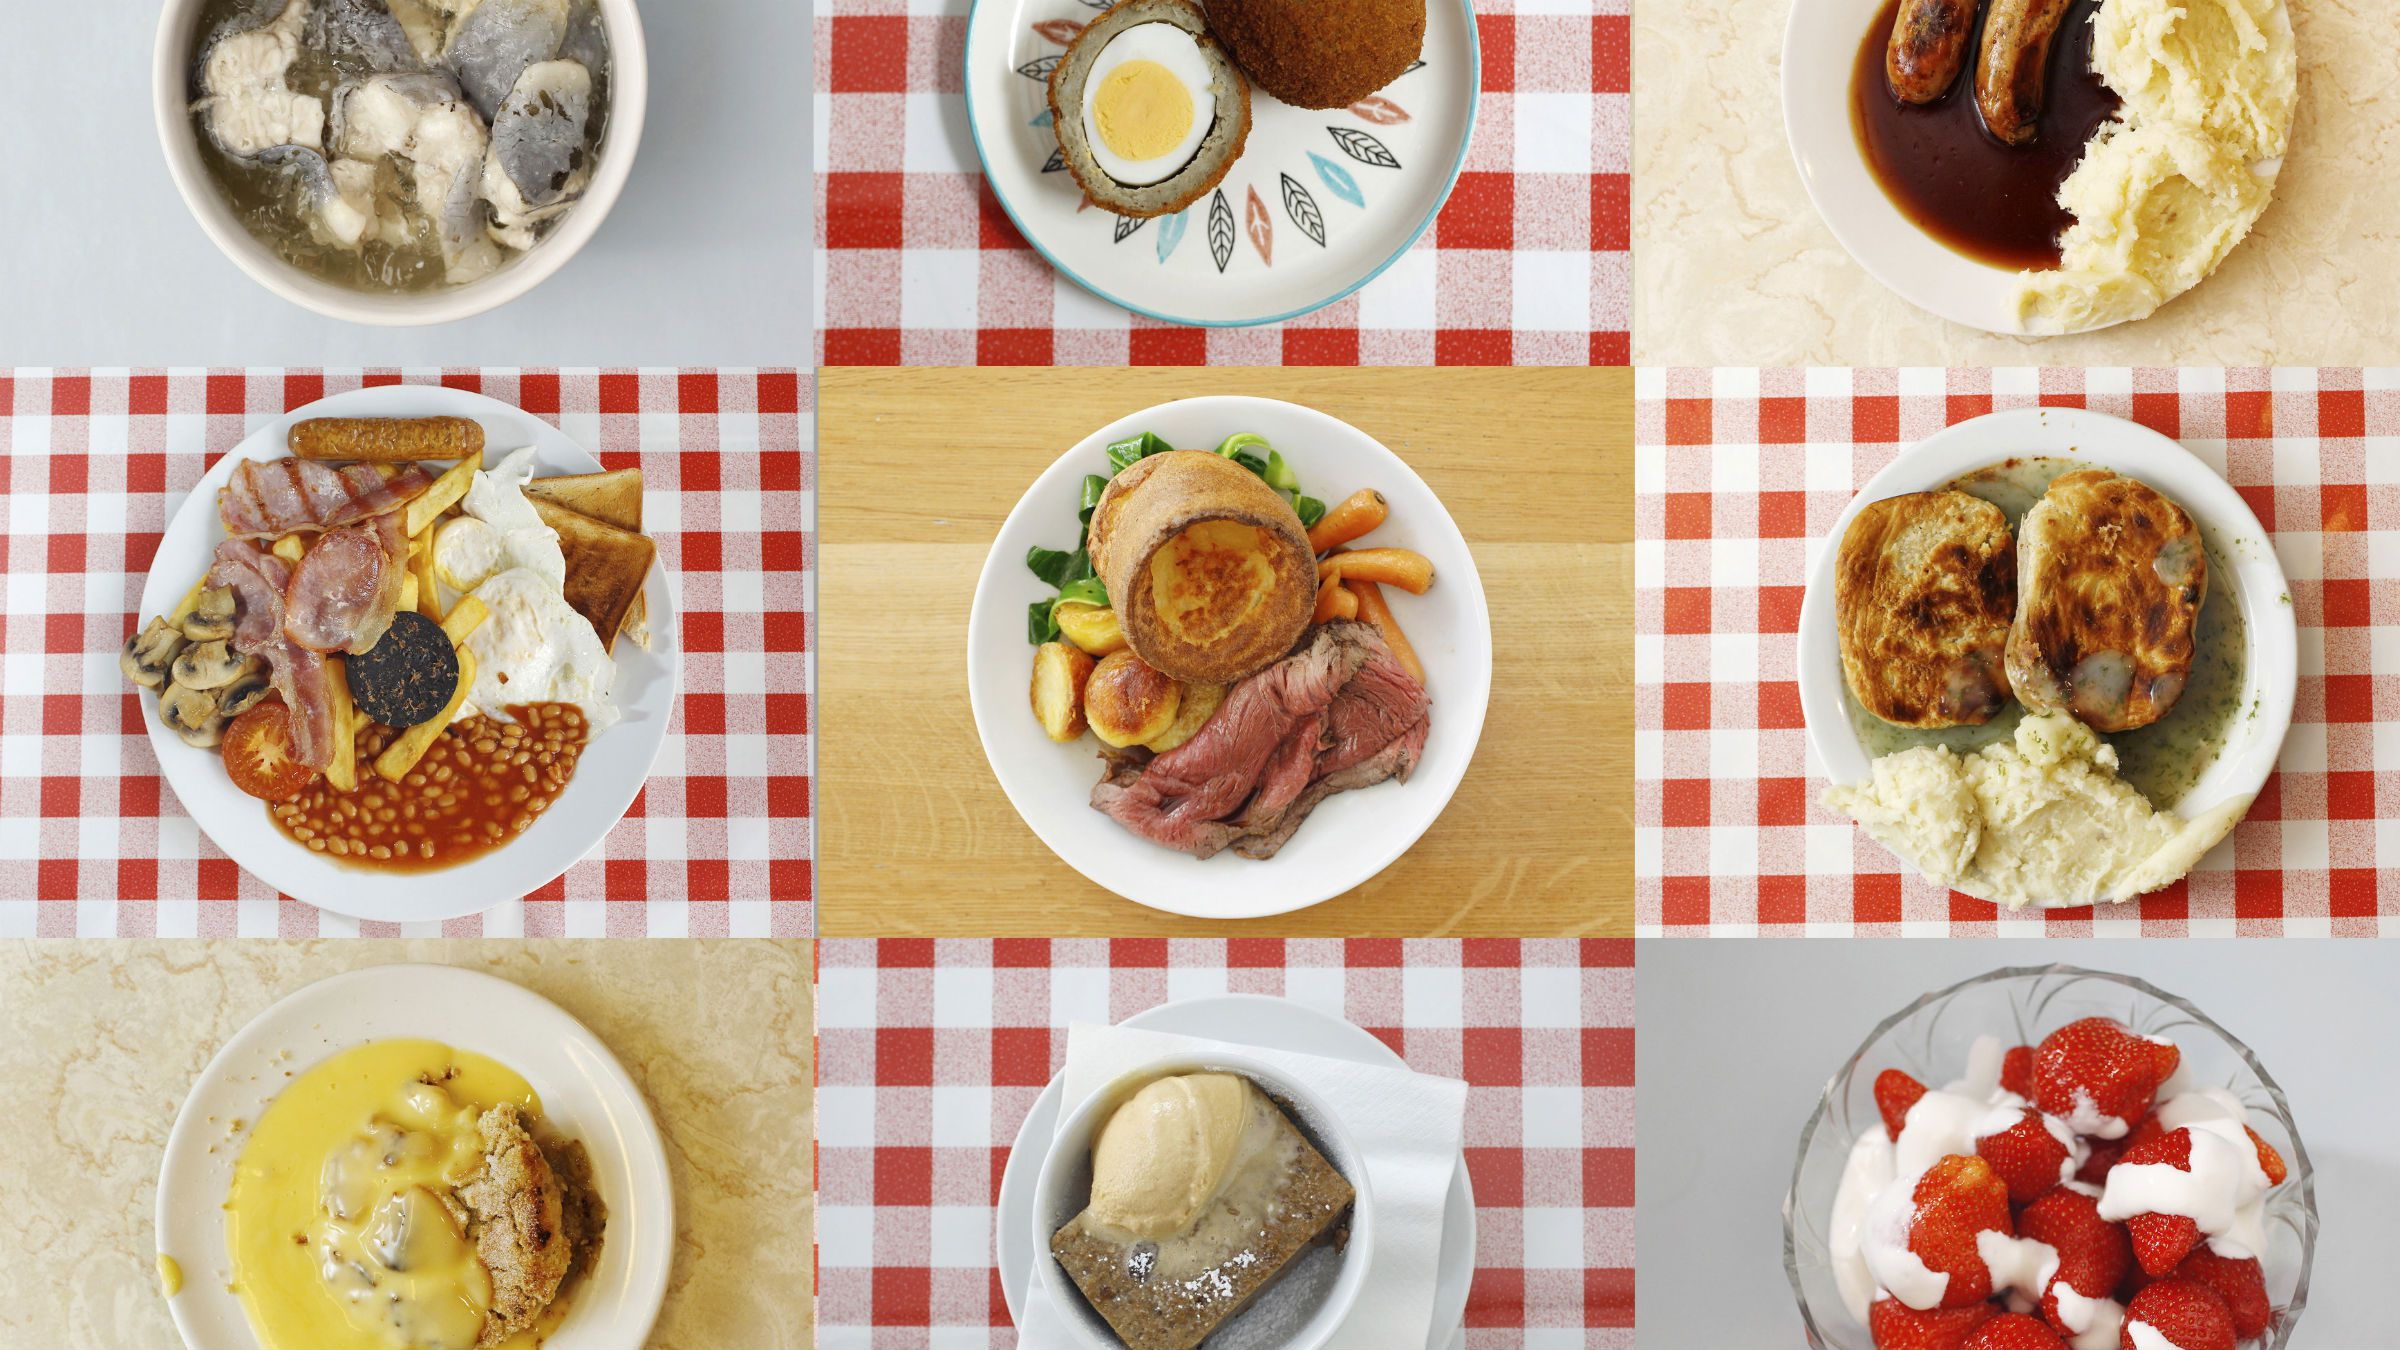 Jellied eels (top row L-R), scotch eggs, bangers and mash (middle row L-R), a full English breakfast, roast beef and yorkshire pudding, pie and mash in liquor, crumble and custard (bottom row L-R), bread and butter pudding and strawberries and cream are seen in this combination photograph taken June 13, 2012. A menu of oddly named and sometimes oddly tasting traditional British dishes awaits adventurous diners visiting London for the Olympic Games this summer. REUTERS/Suzanne Plunkett (BRITAIN - Tags: FOOD SPORT OLYMPICS TPX IMAGES OF THE DAY)